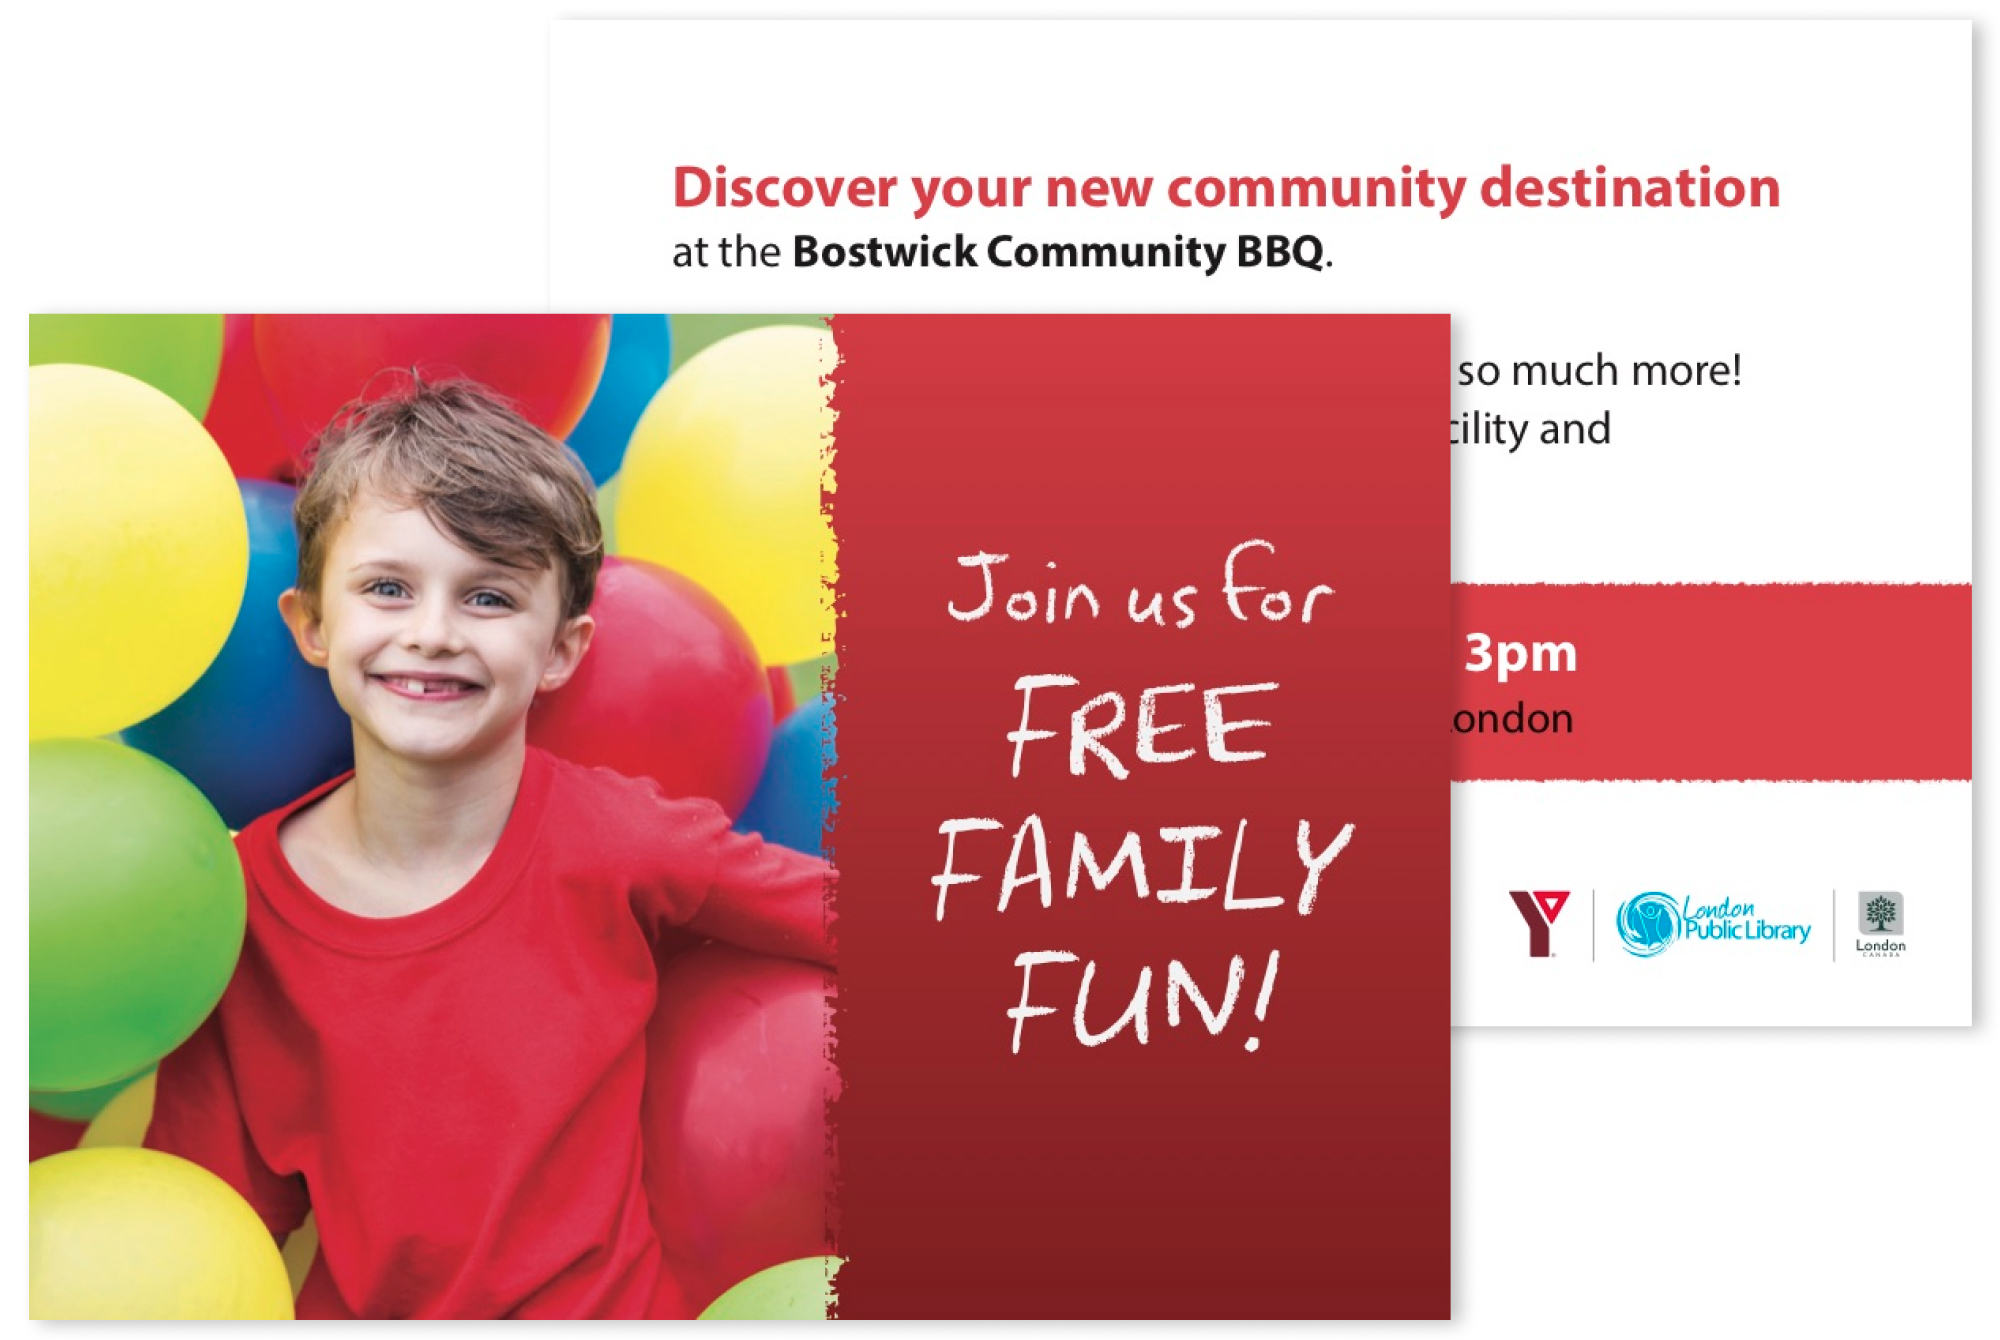 Postcard advertising a family BBQ at the Bostwick Community Centre